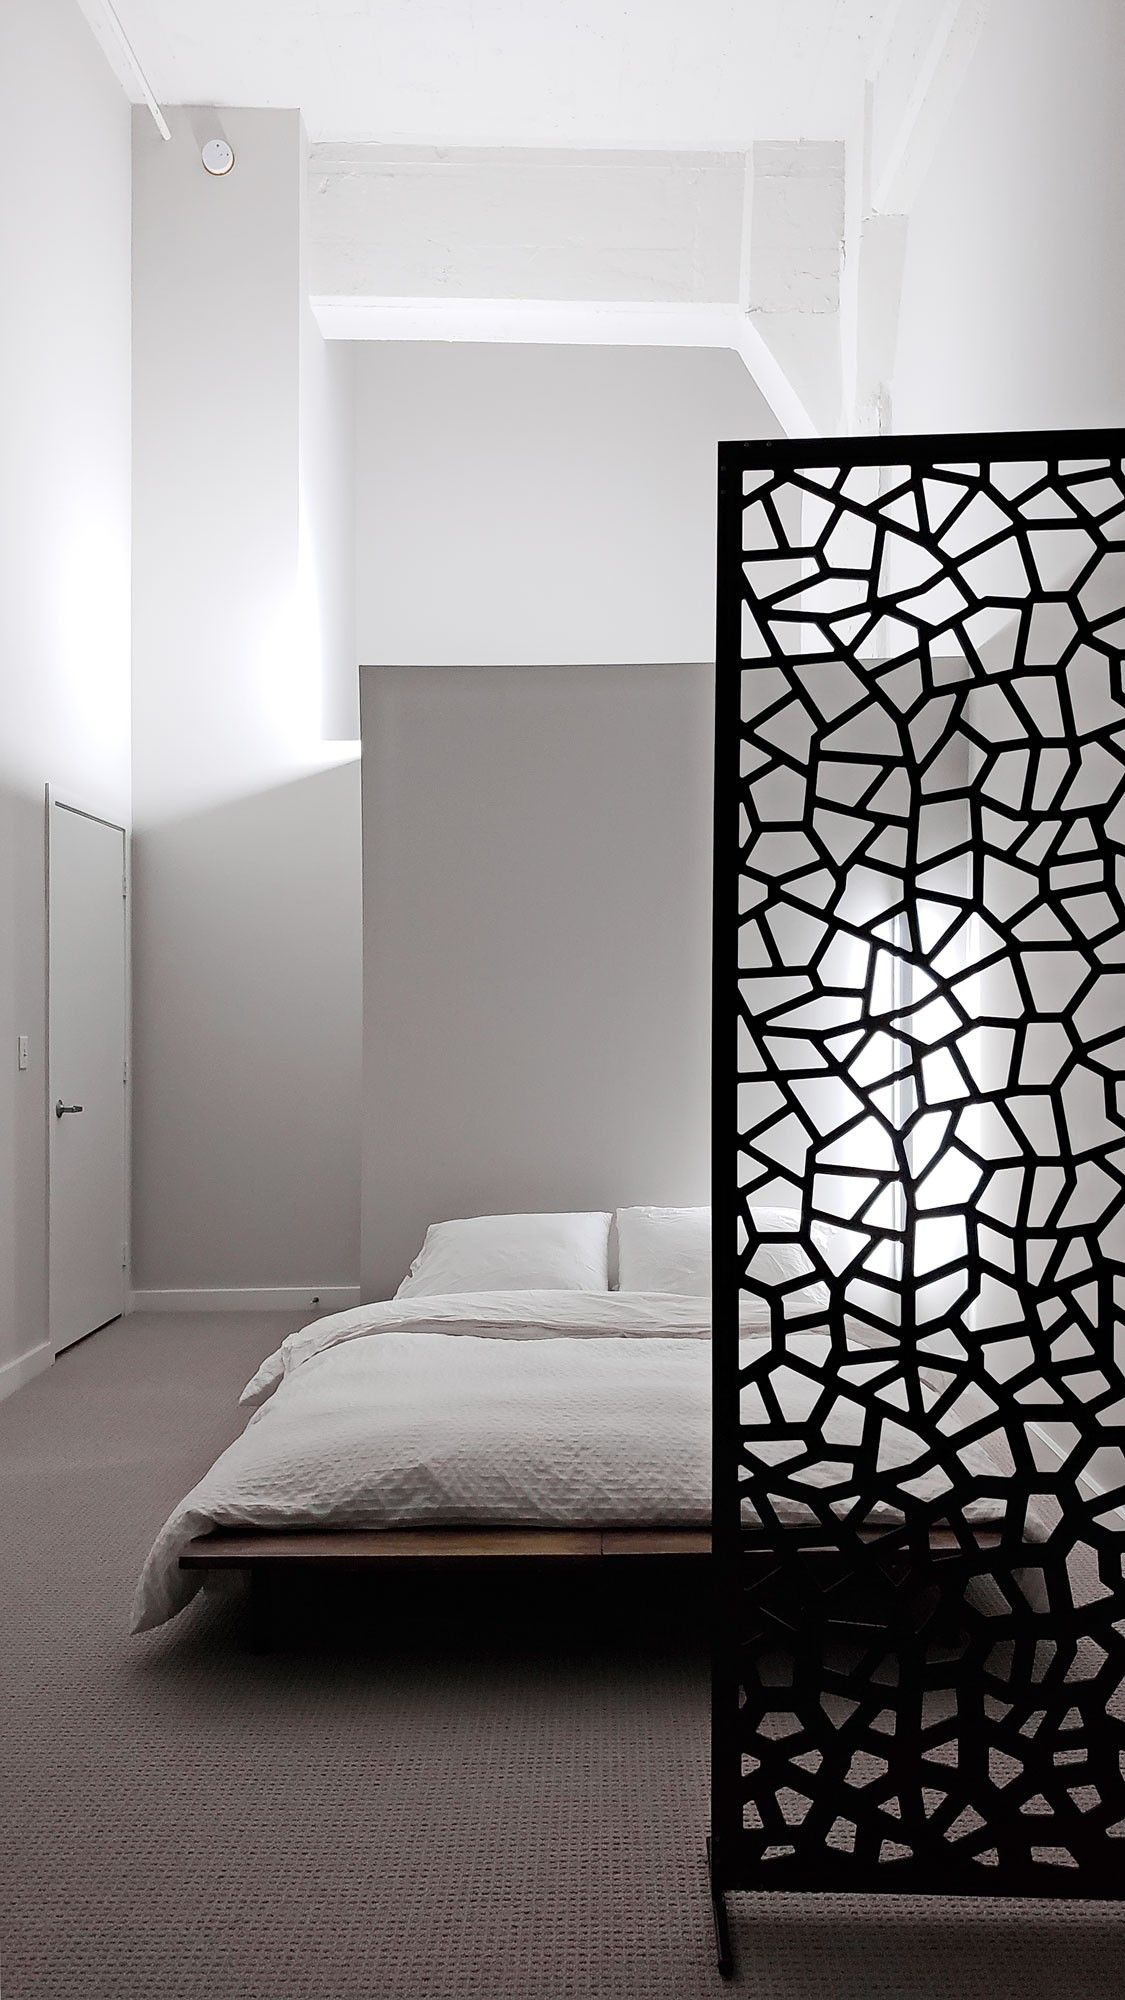 Decorative Screen Room Dividers Custom Made To Order Single Layer Pvc Panel Web Pattern Black Roo Room Decor Bedroom Partition Design Screen Room Divider